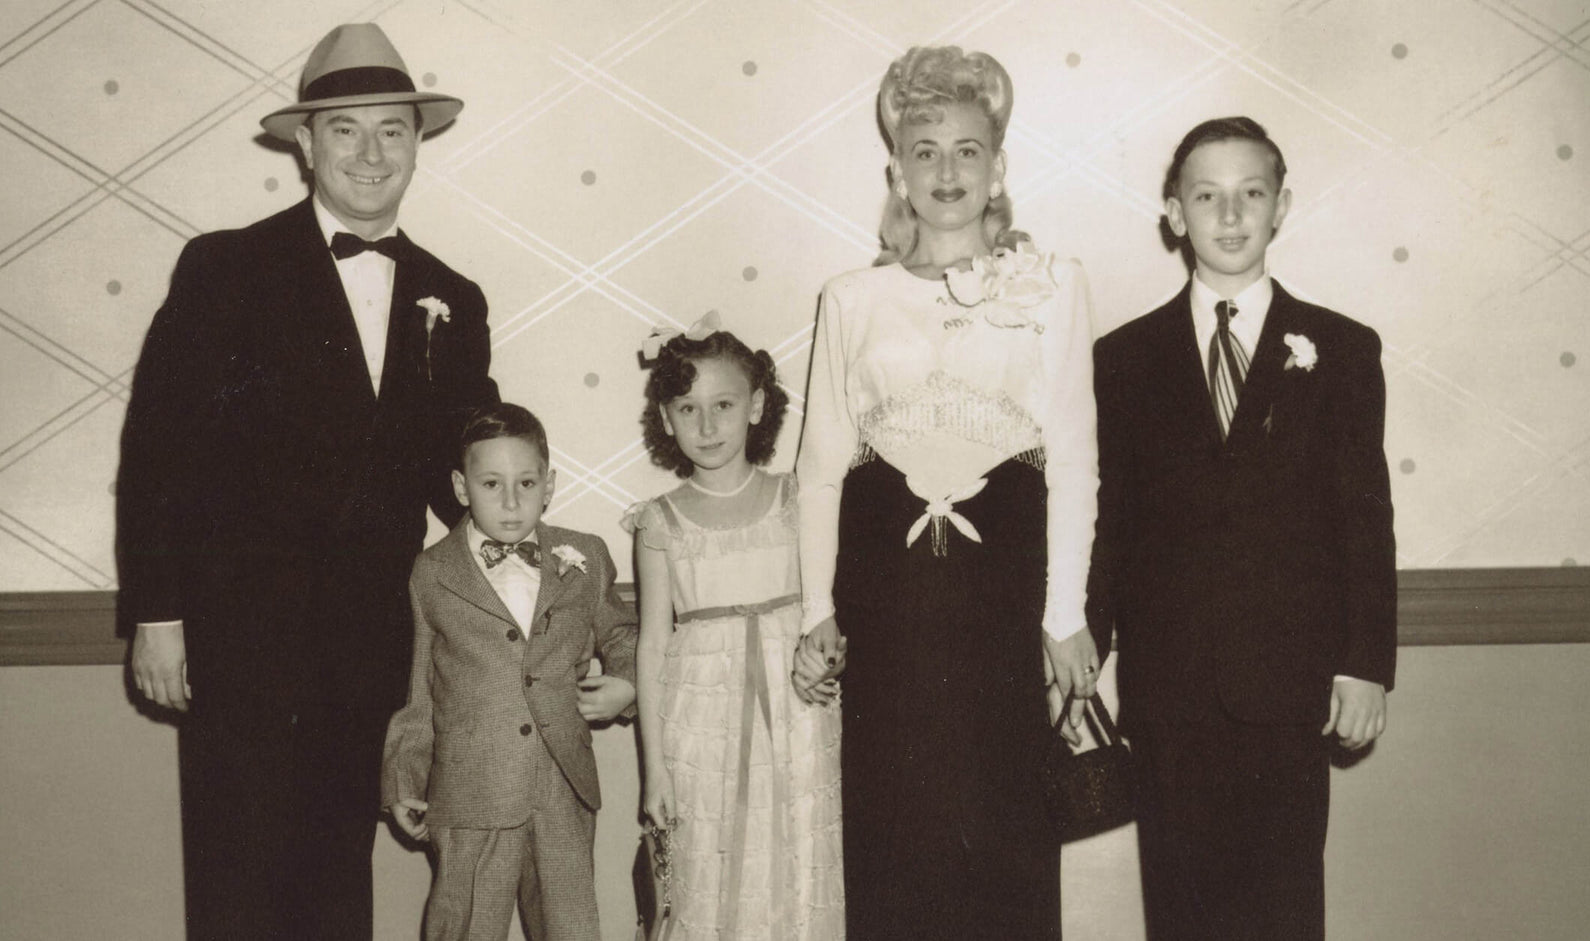 Sol and Grandma Sylvia with their three children, Danny, Beverly, and Joel, dressed in their finest to celebrate Joel's thirteenth birthday in 1948.